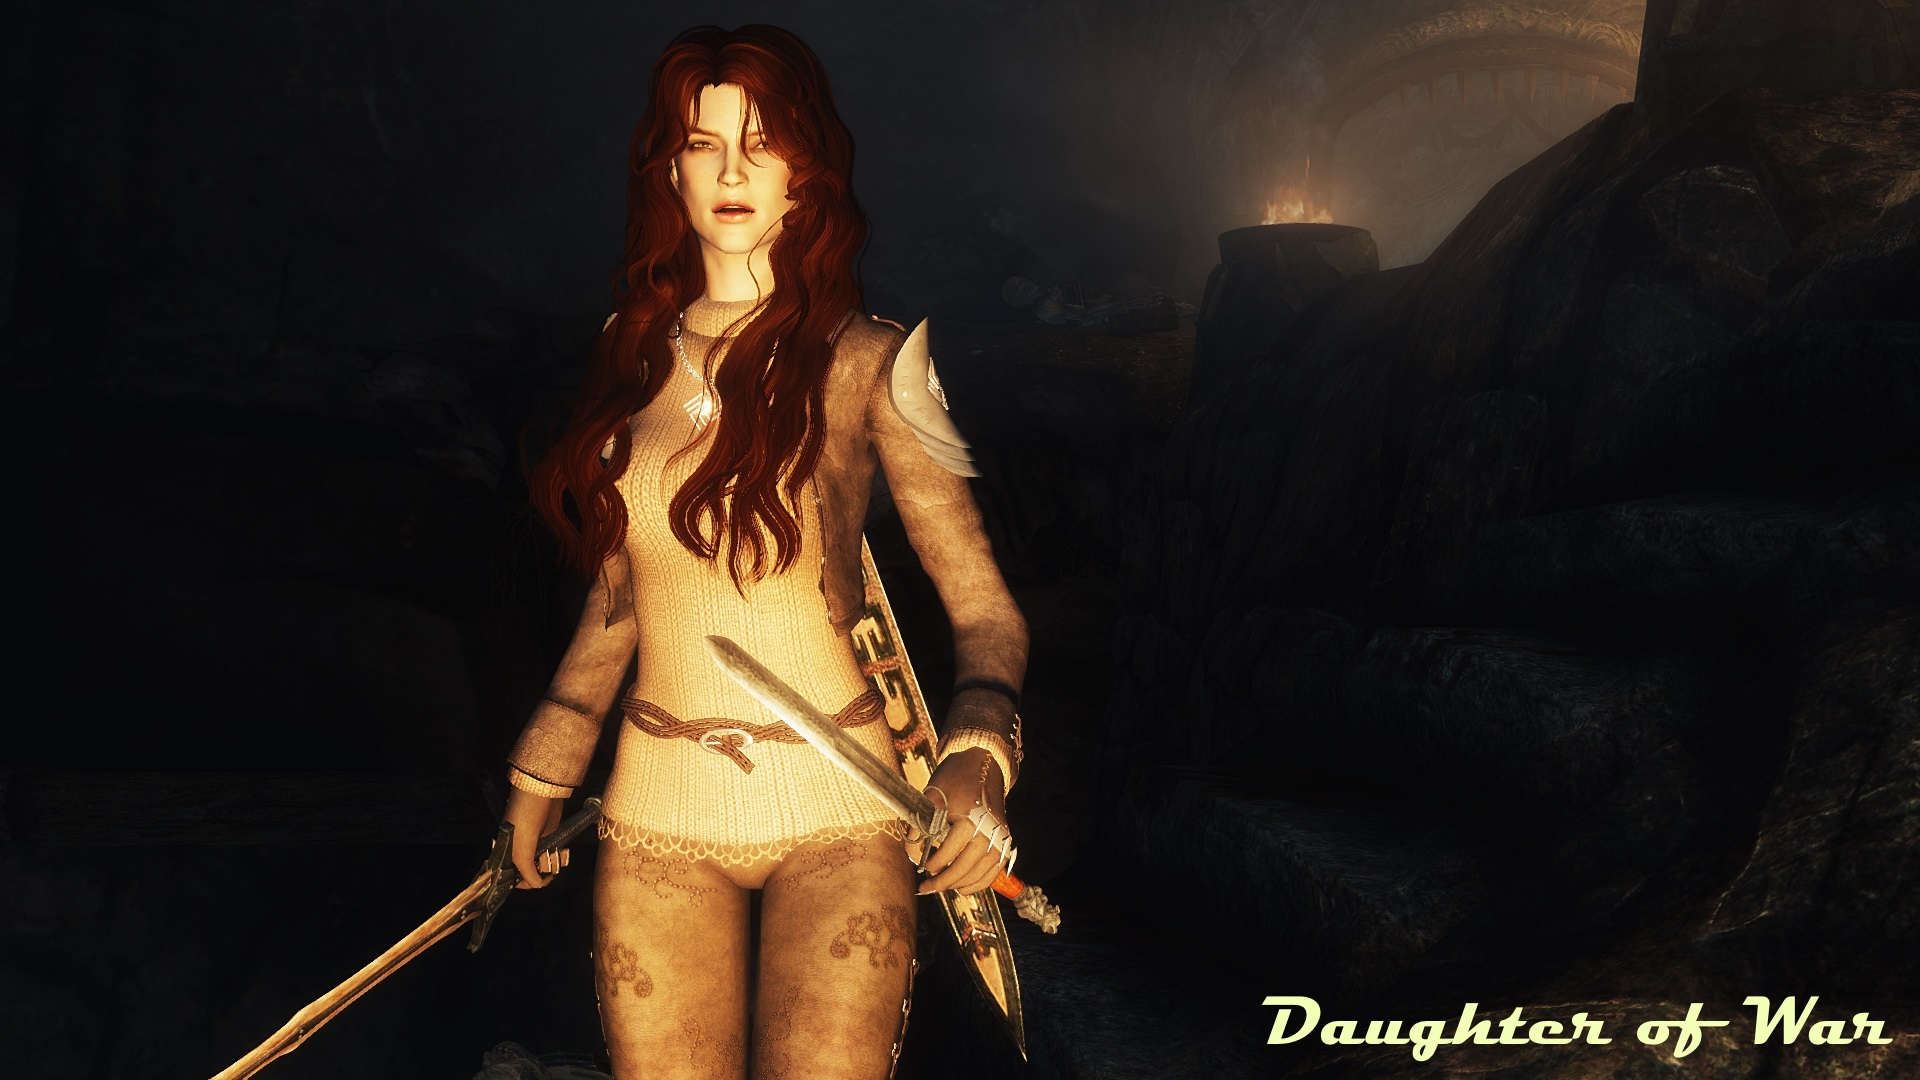 Daughter_of_war_00.jpg